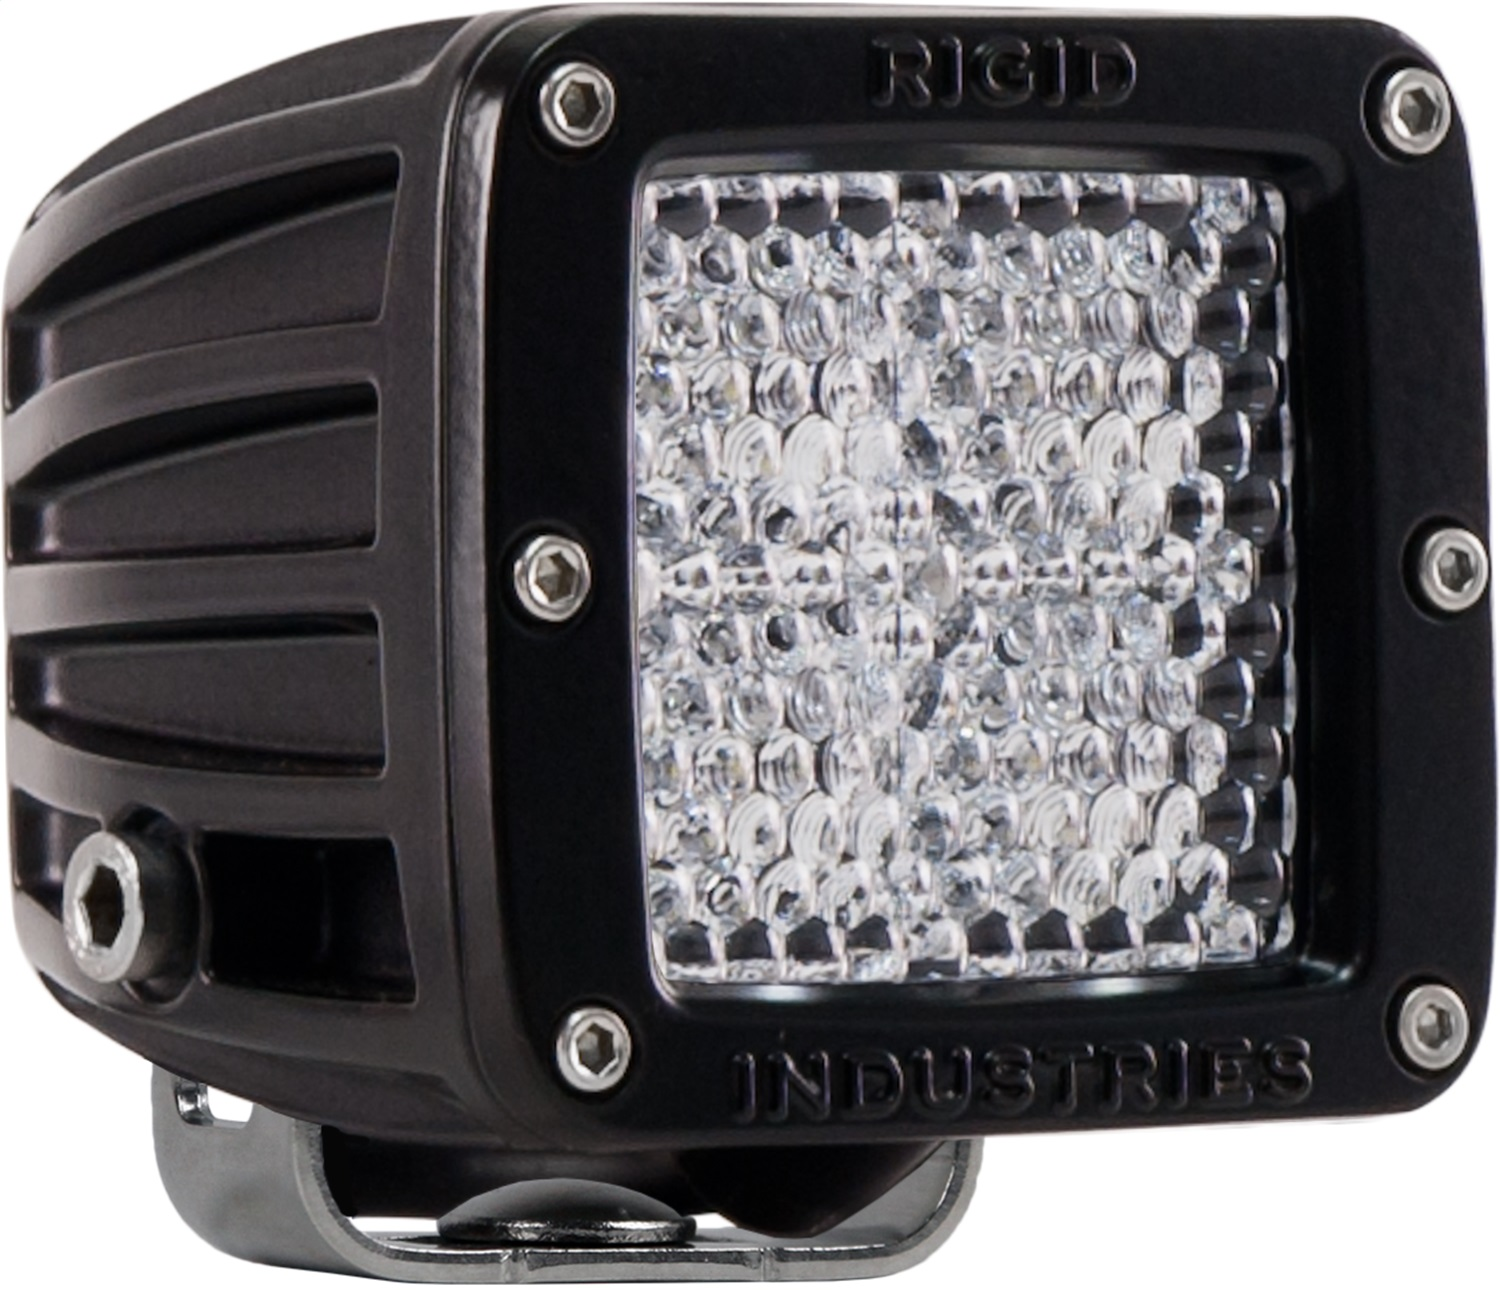 Rigid Industries 20151 D-Series Dually 60 Deg. Diffusion LED Light